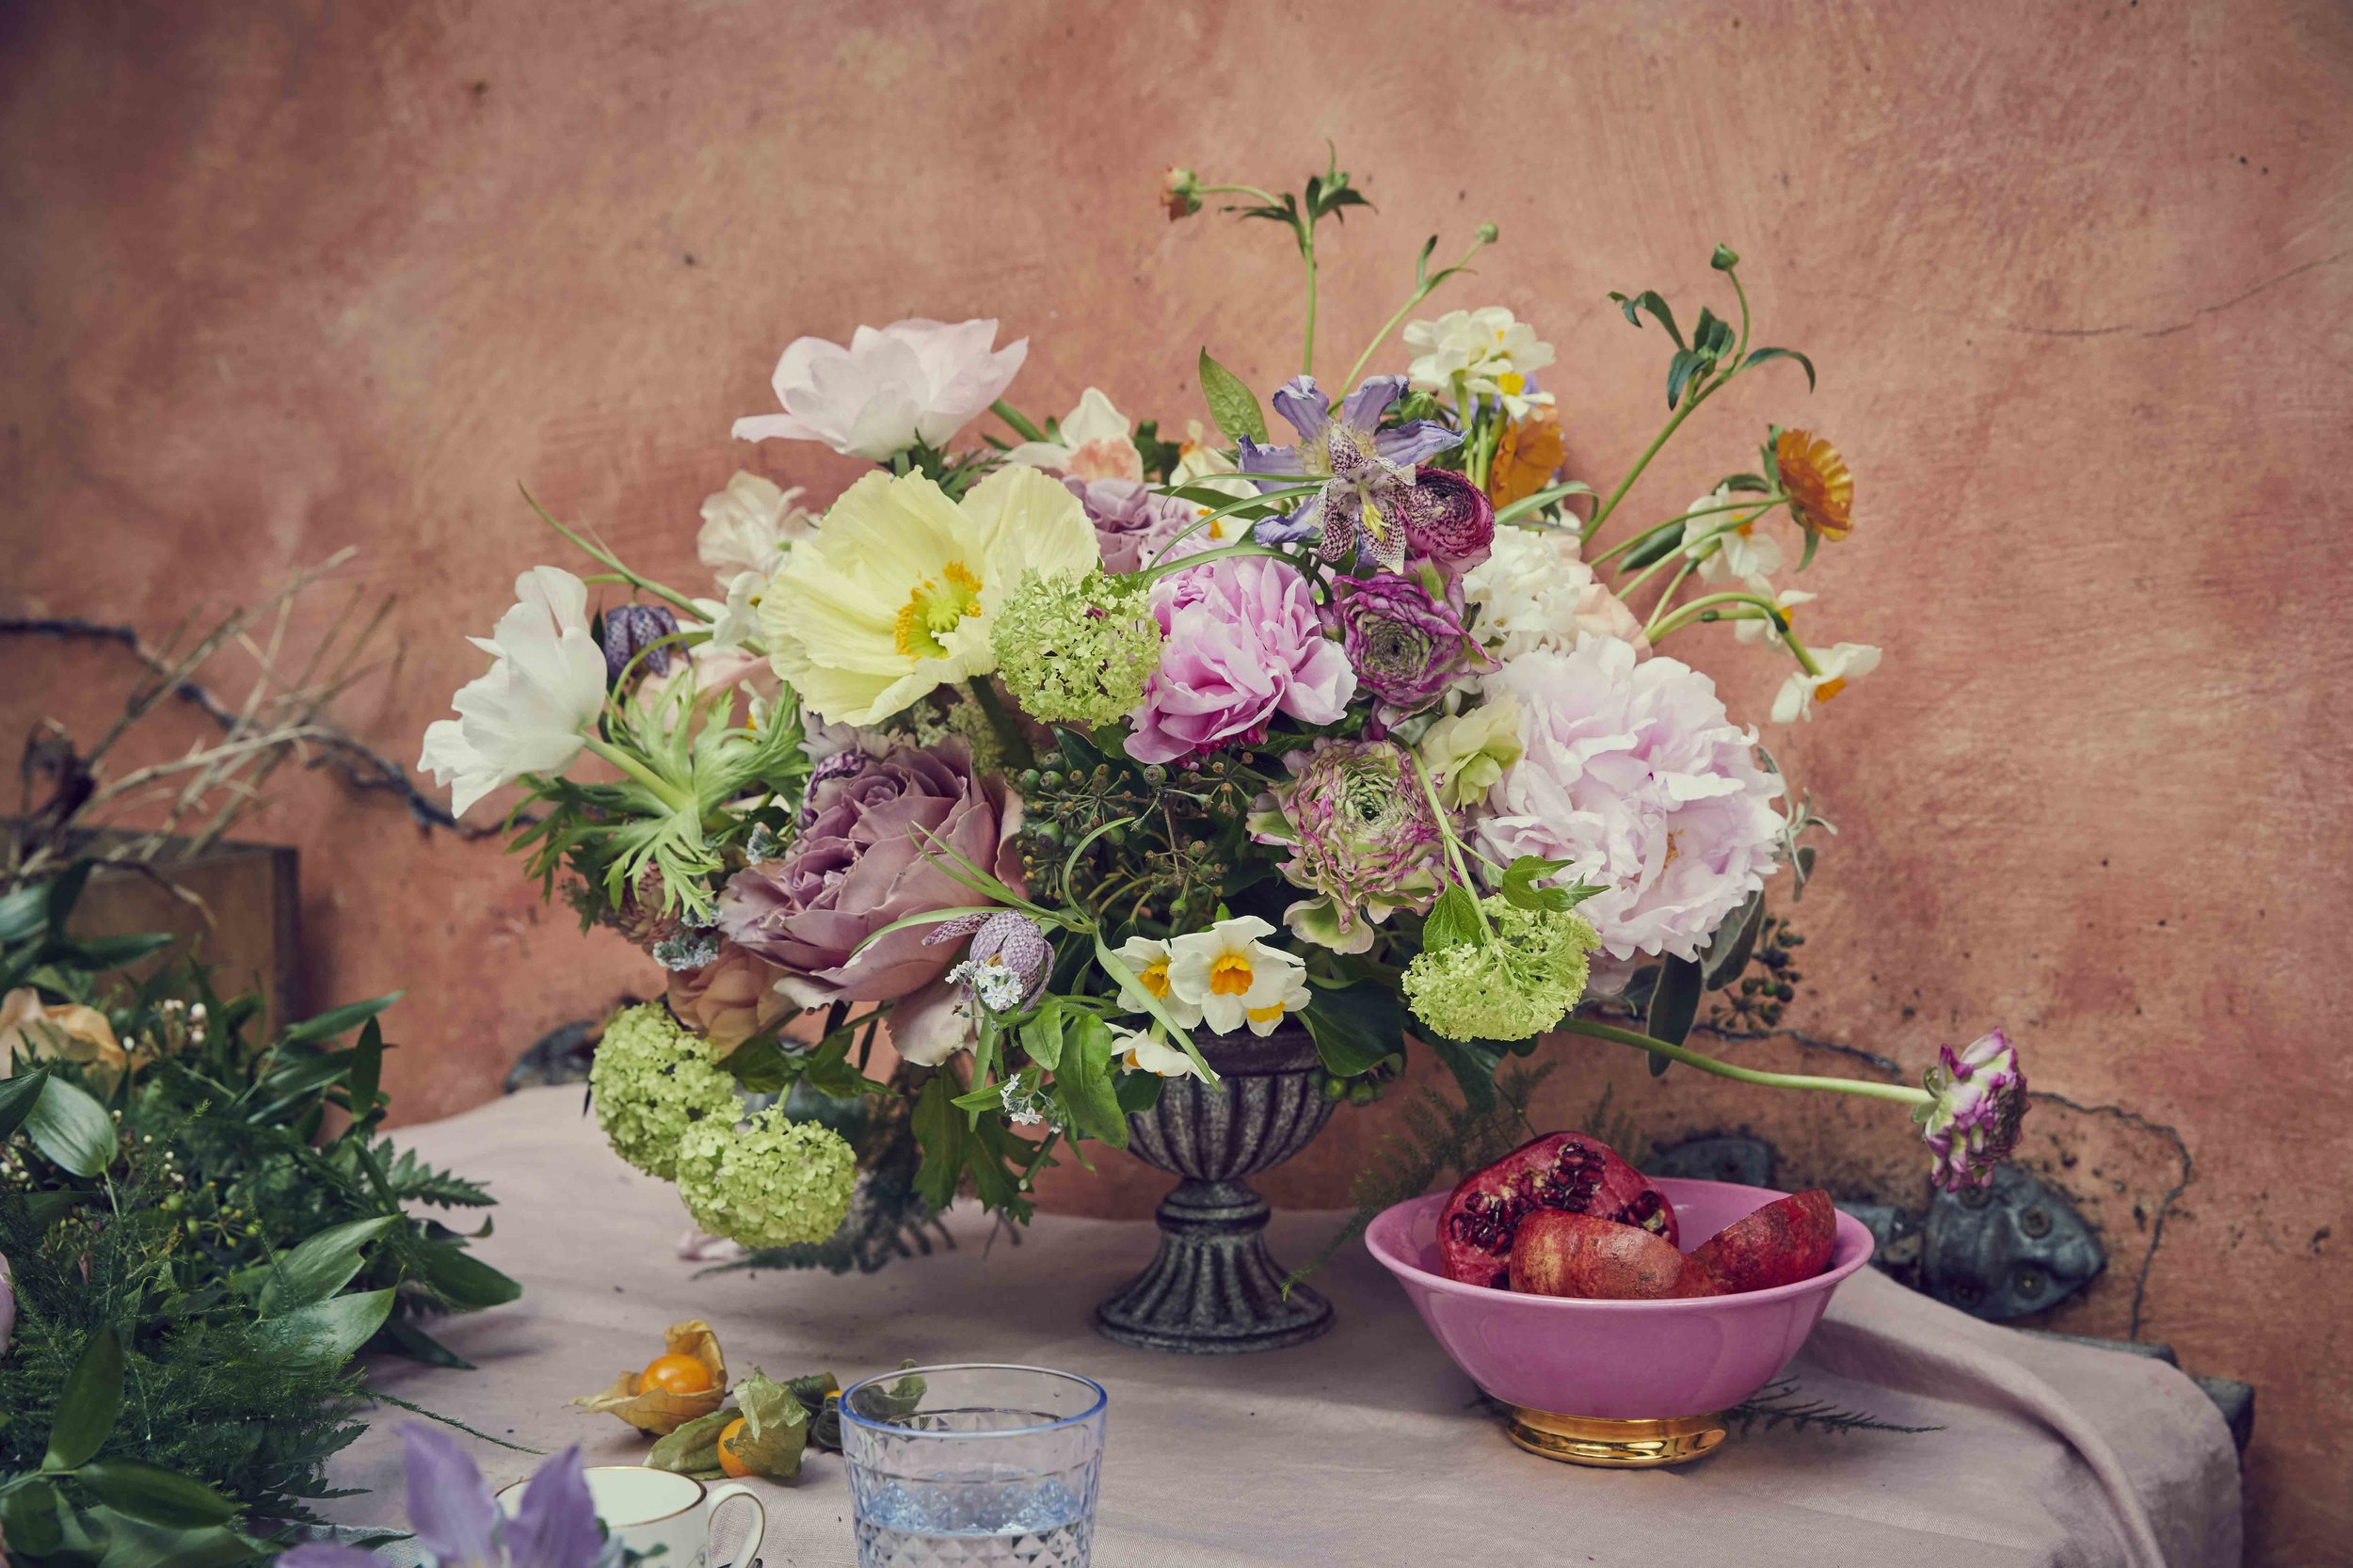 """Above: A compote vessel that holds an arrangement of cloni and butterfly rannunculus, daffodils, poppies, """"Sarah Bernhardt"""" peonies and """"Cafe Latte"""" roses.  Below: Rowan's floral candlestick and showstopper urn featuring delphiniums, pink tuberose, sea lavender, roses and snapdragons; floral garnishes for summer drinks and a flowery cake stand; a large pickle jar filled with larkspur, lisianthus, delphiniums and """"Quicksand"""" roses and Rowan's pressed flower cards."""